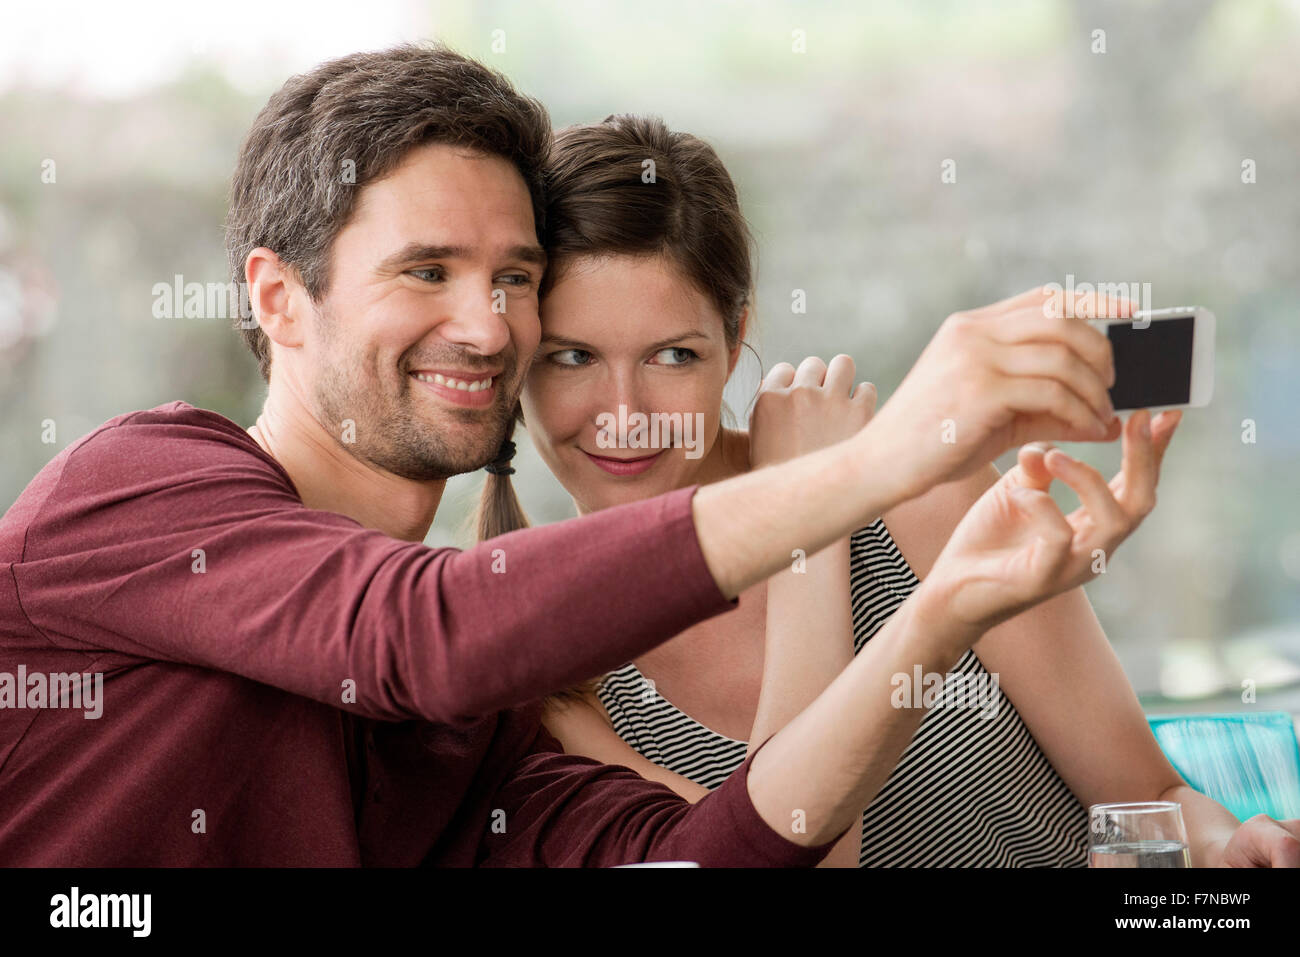 Couple taking selfie with smartphone - Stock Image